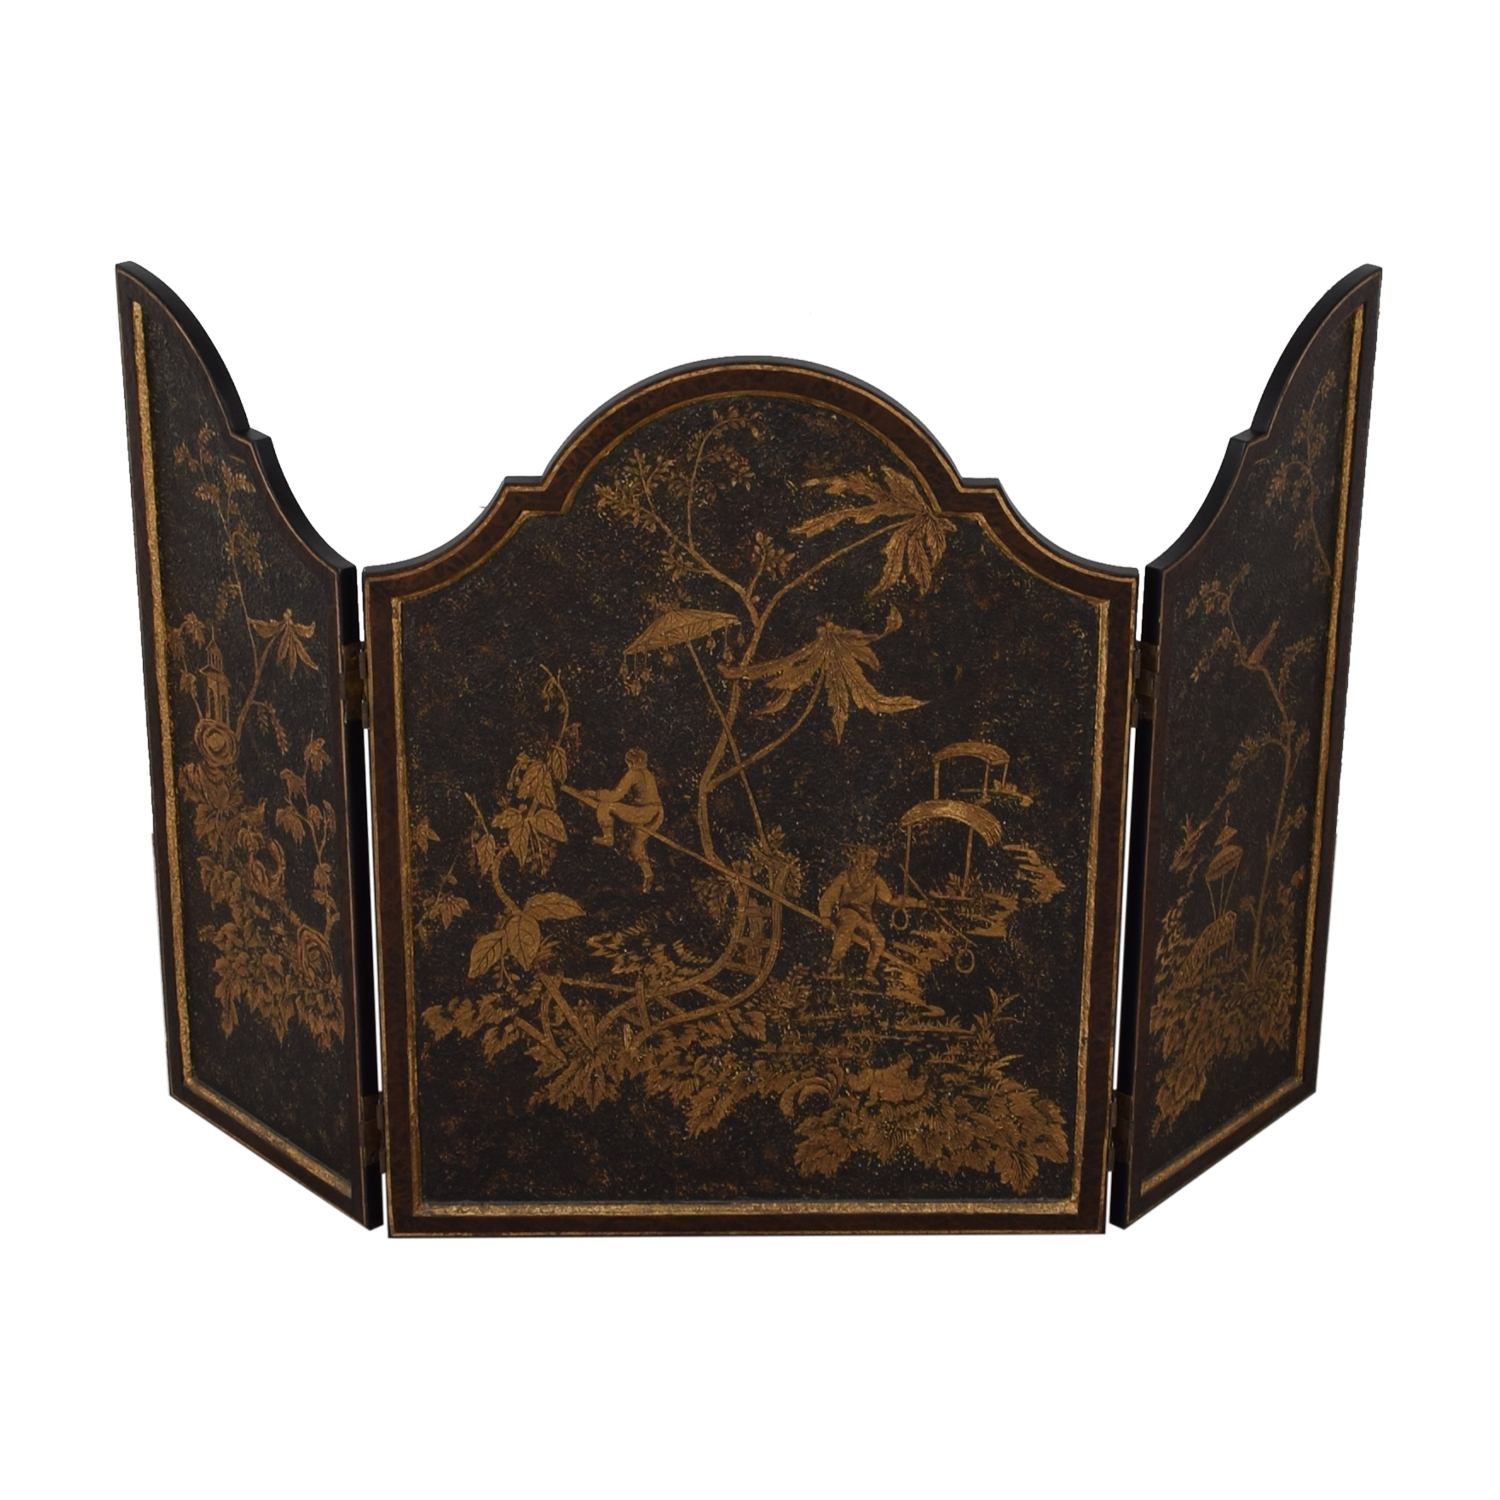 Distressed Gold Three-Panel Screen dimensions